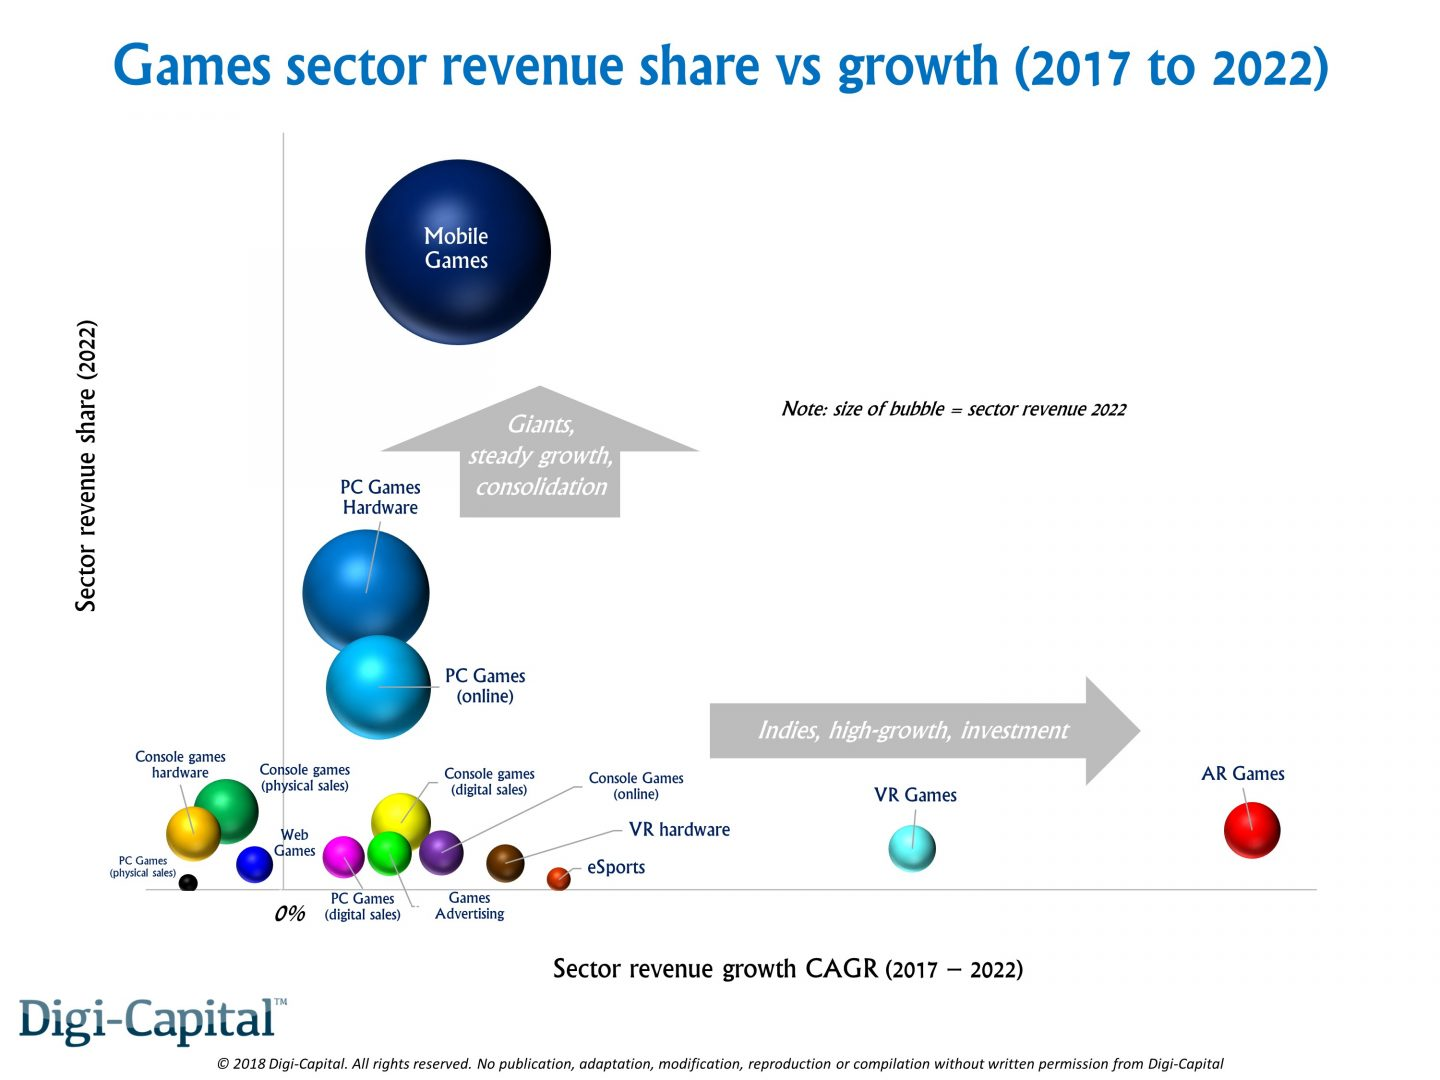 http://www.dsogaming.com/wp-content/uploads/2018/01/Digi-Capital-Games-Sector-Revenue-vs-Growth-1440x1080.jpg